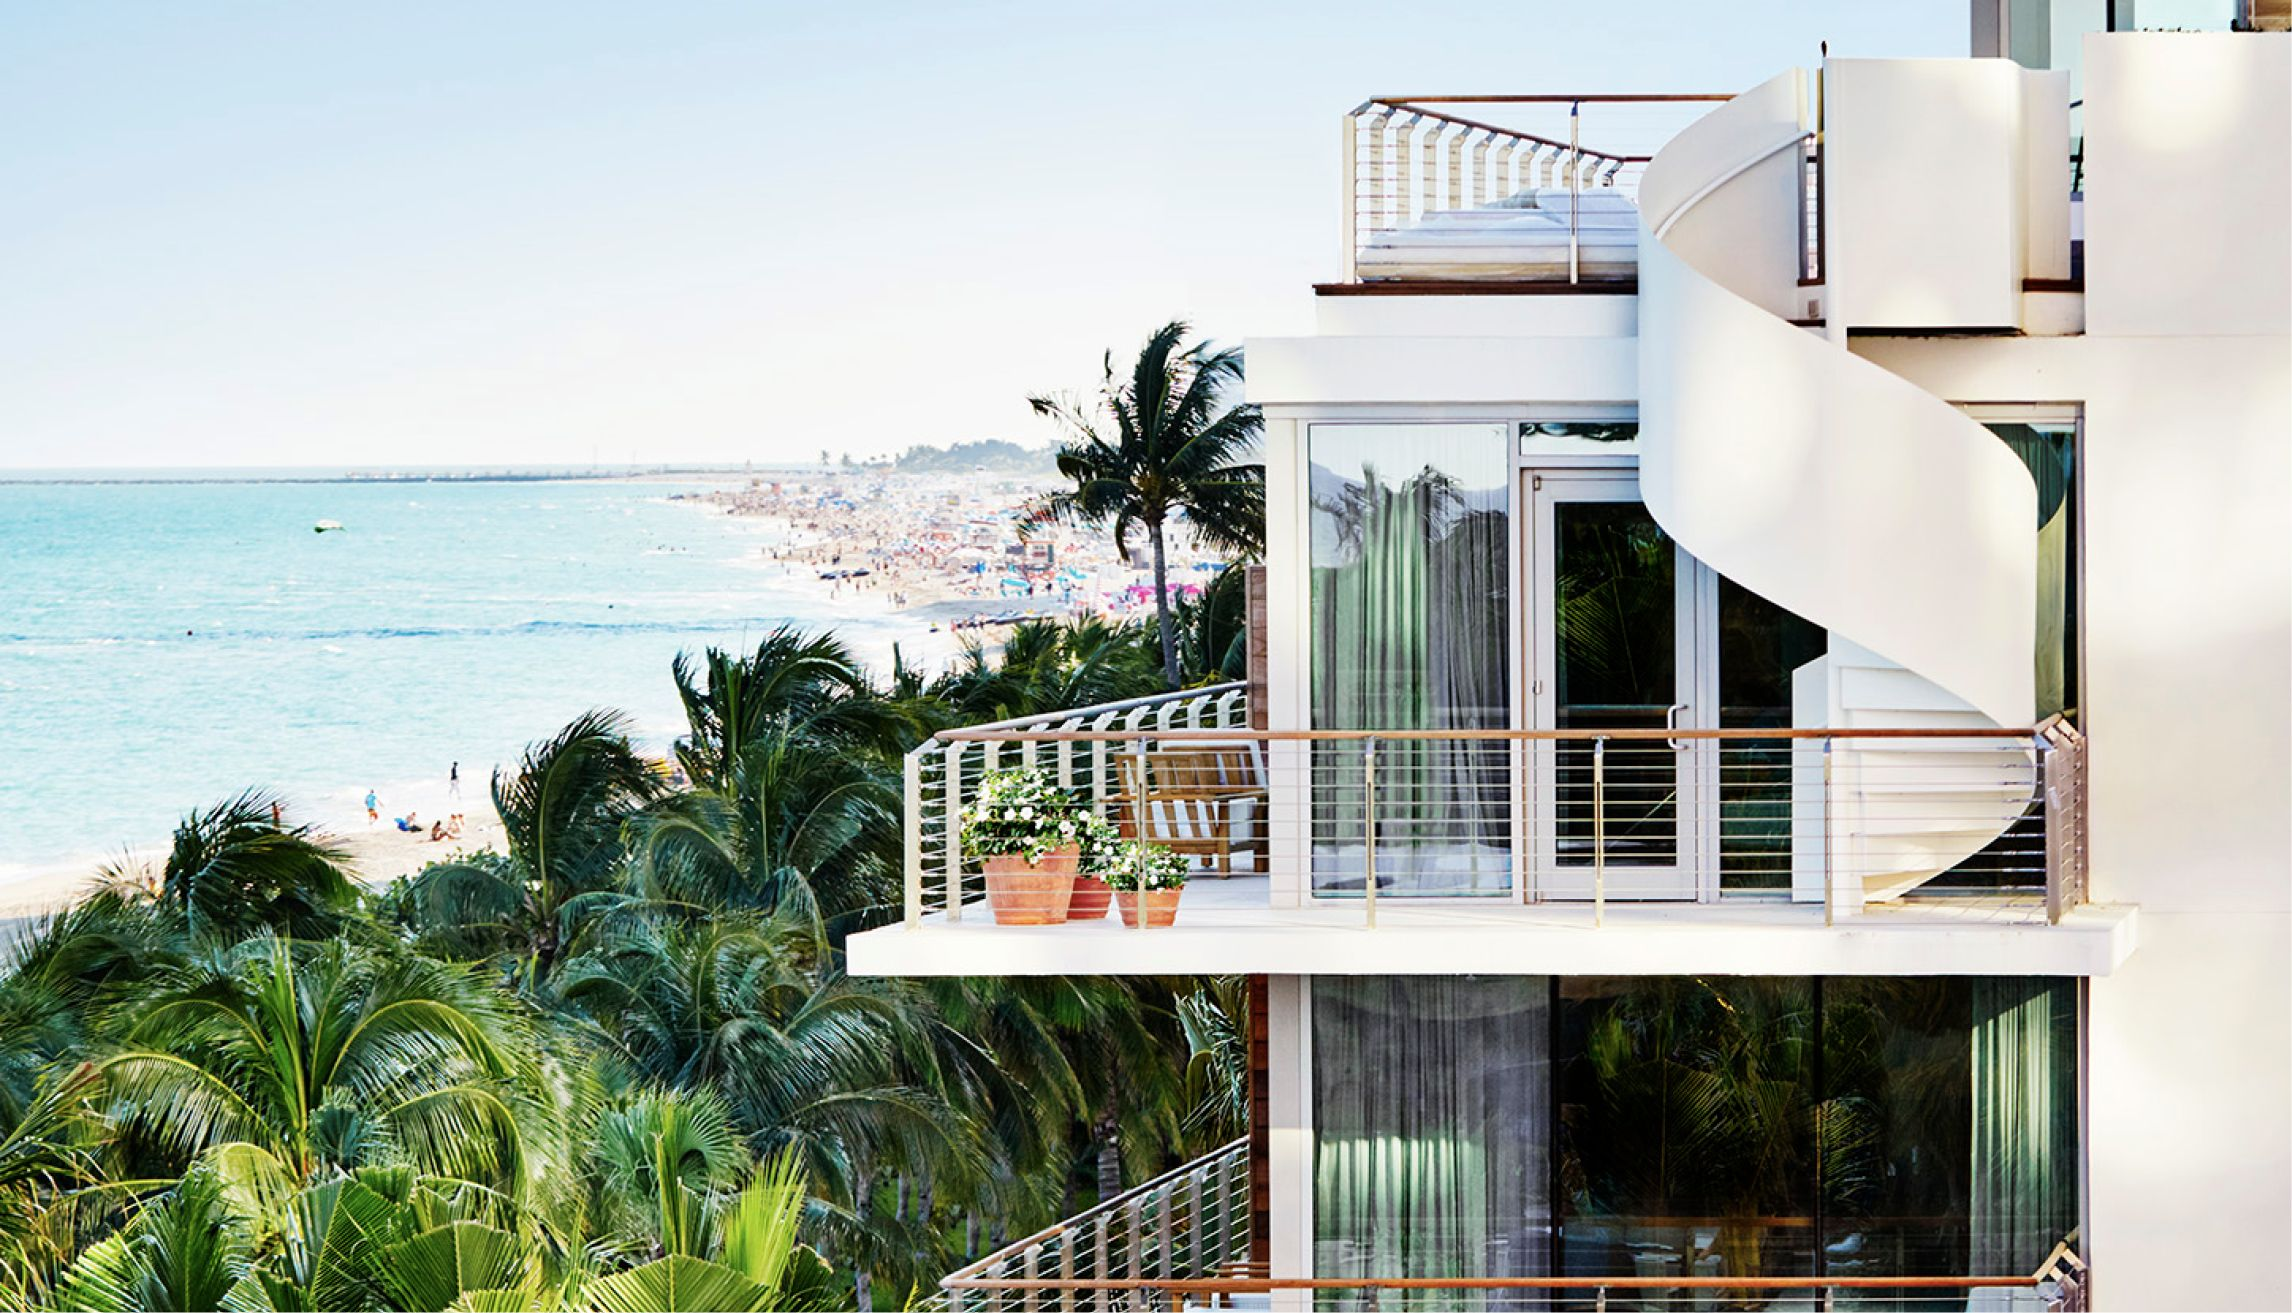 EDITIONHotels miami beach edition via Goodmoods travel